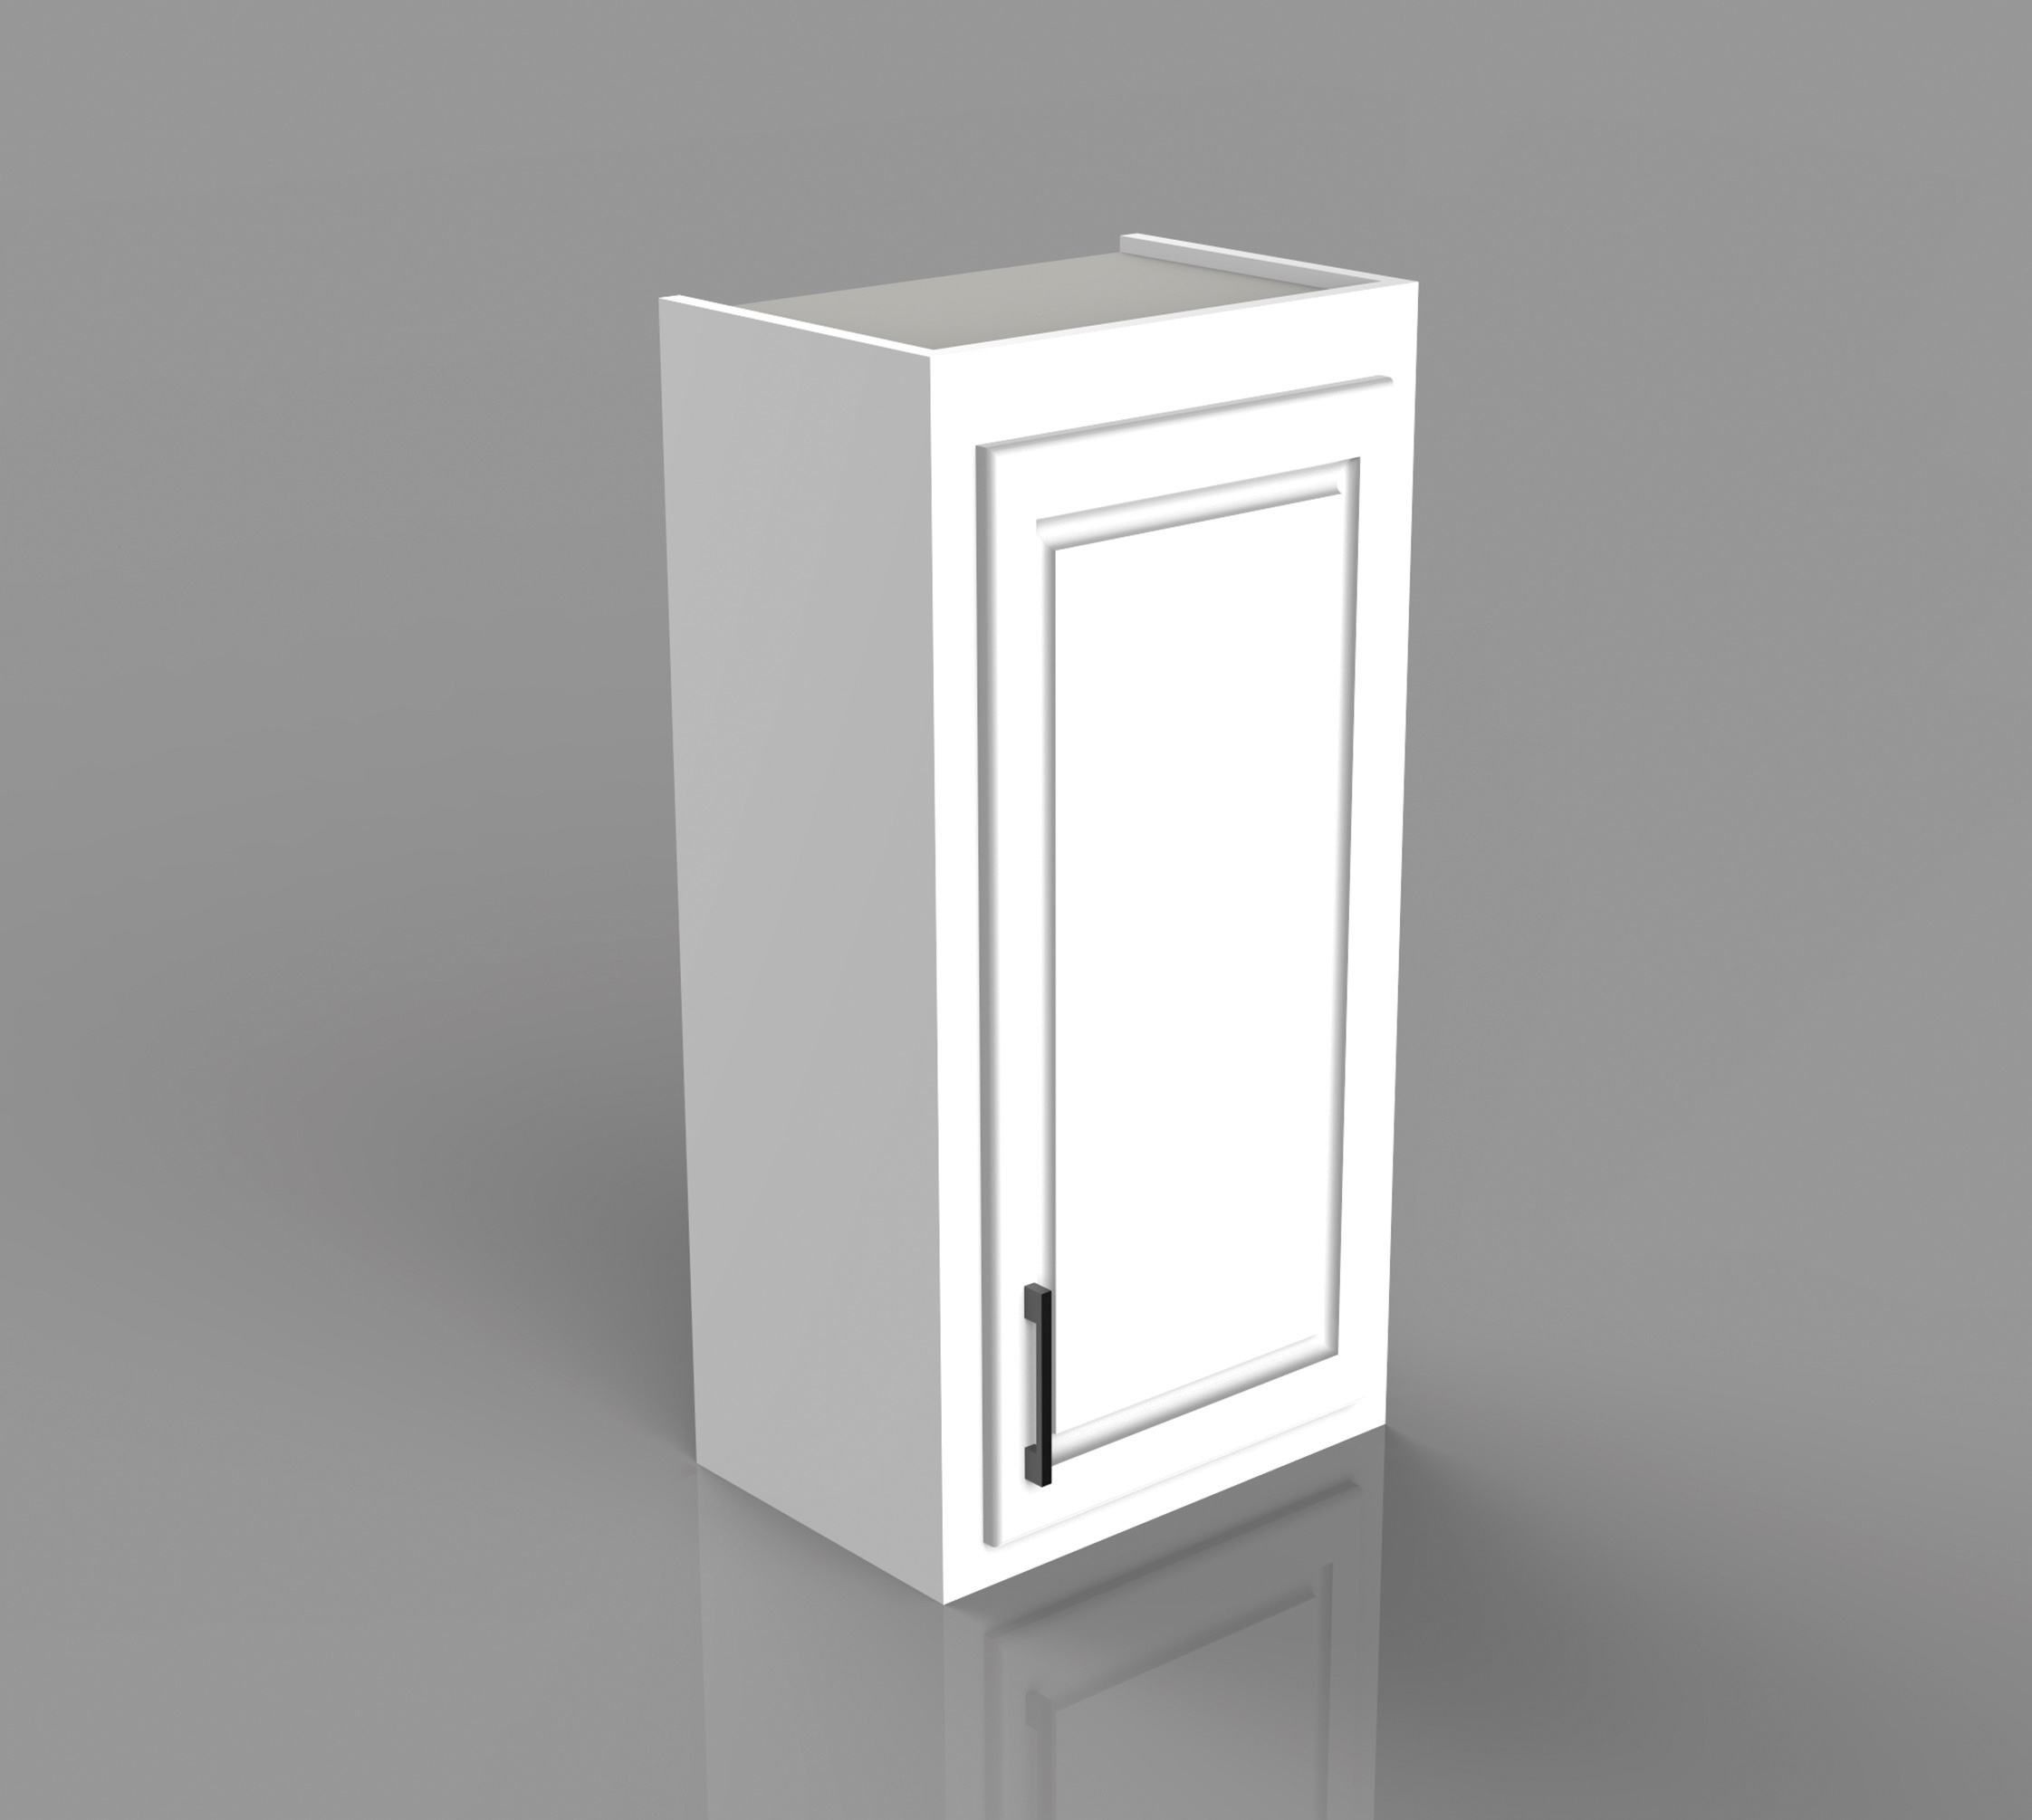 Example of a residential single door upper cabinet